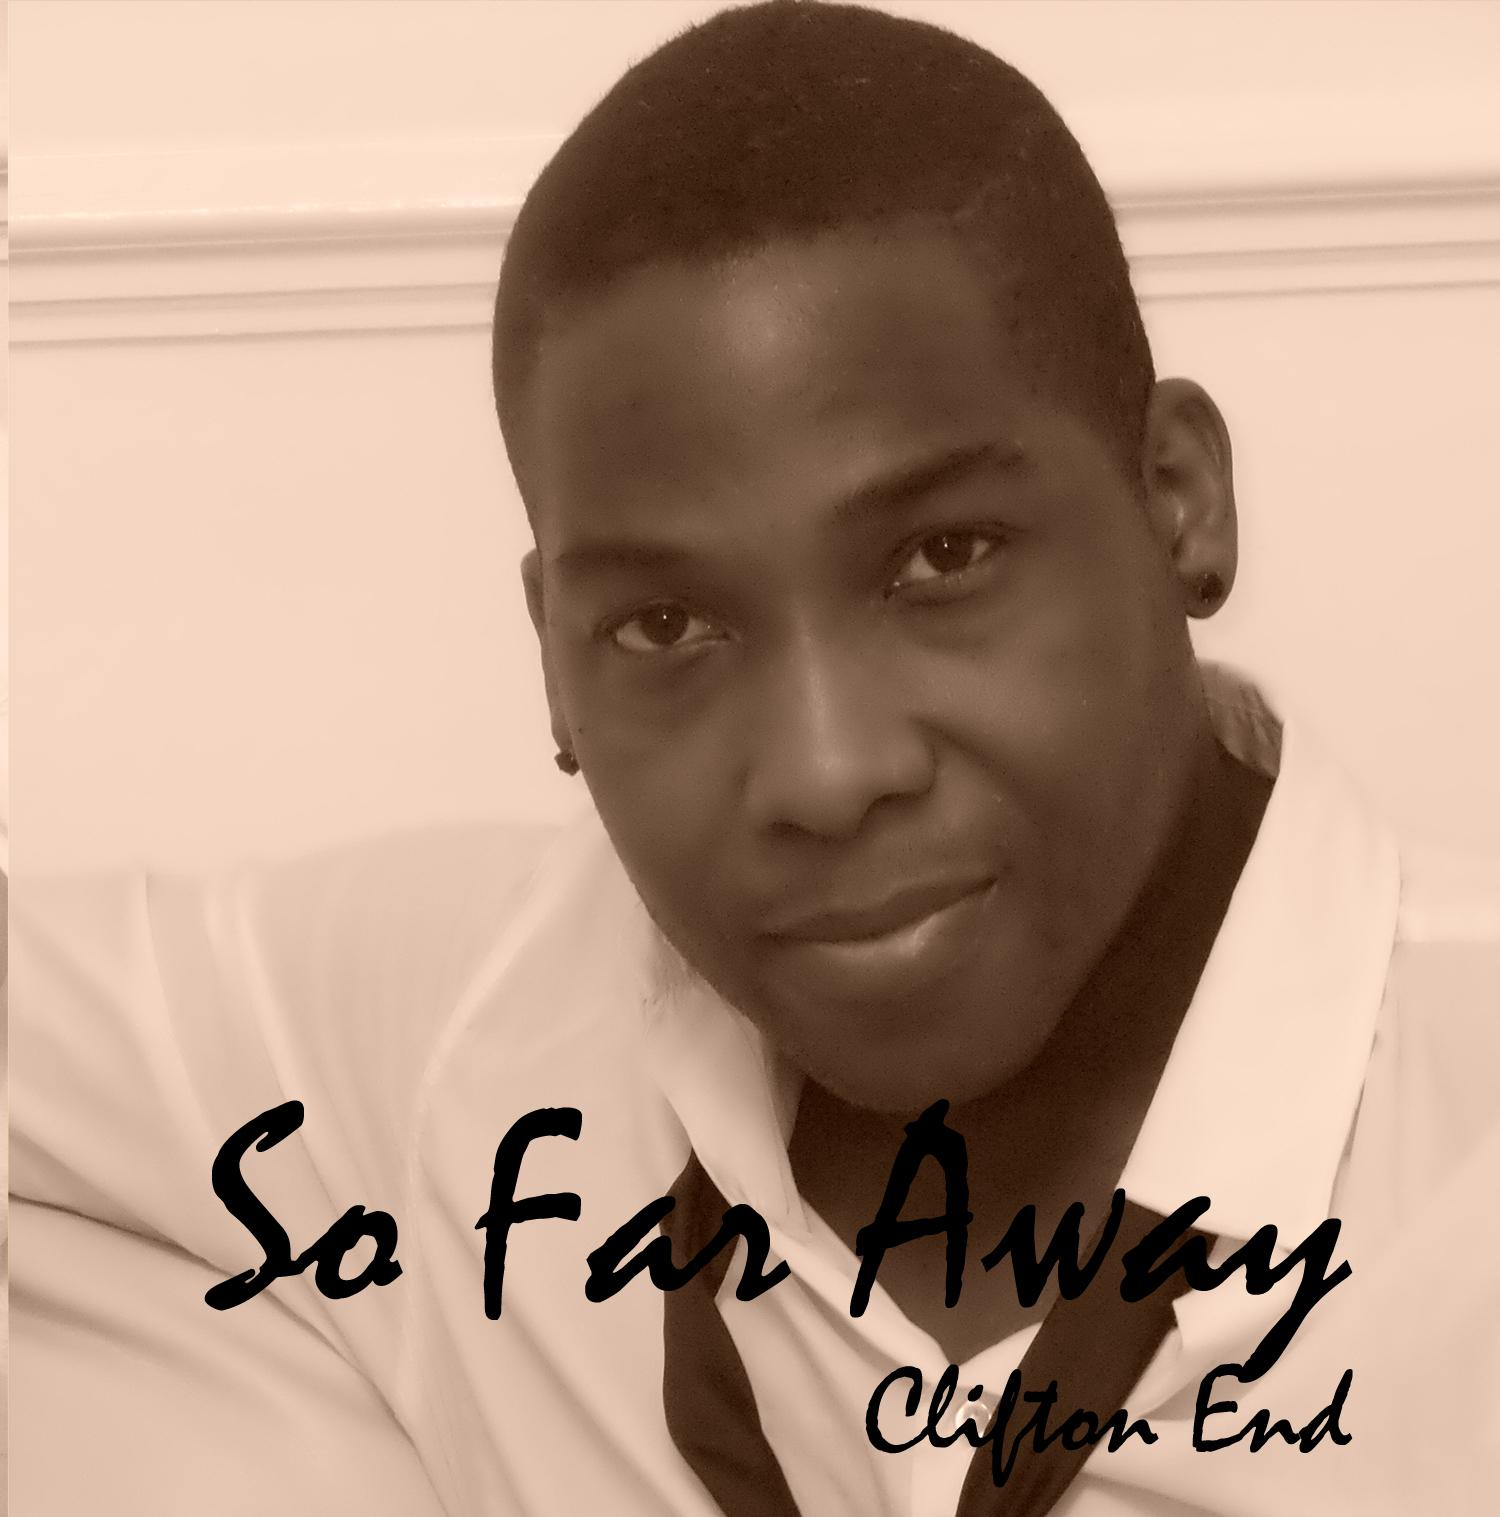 Single Cover Clifton - So Far Away End